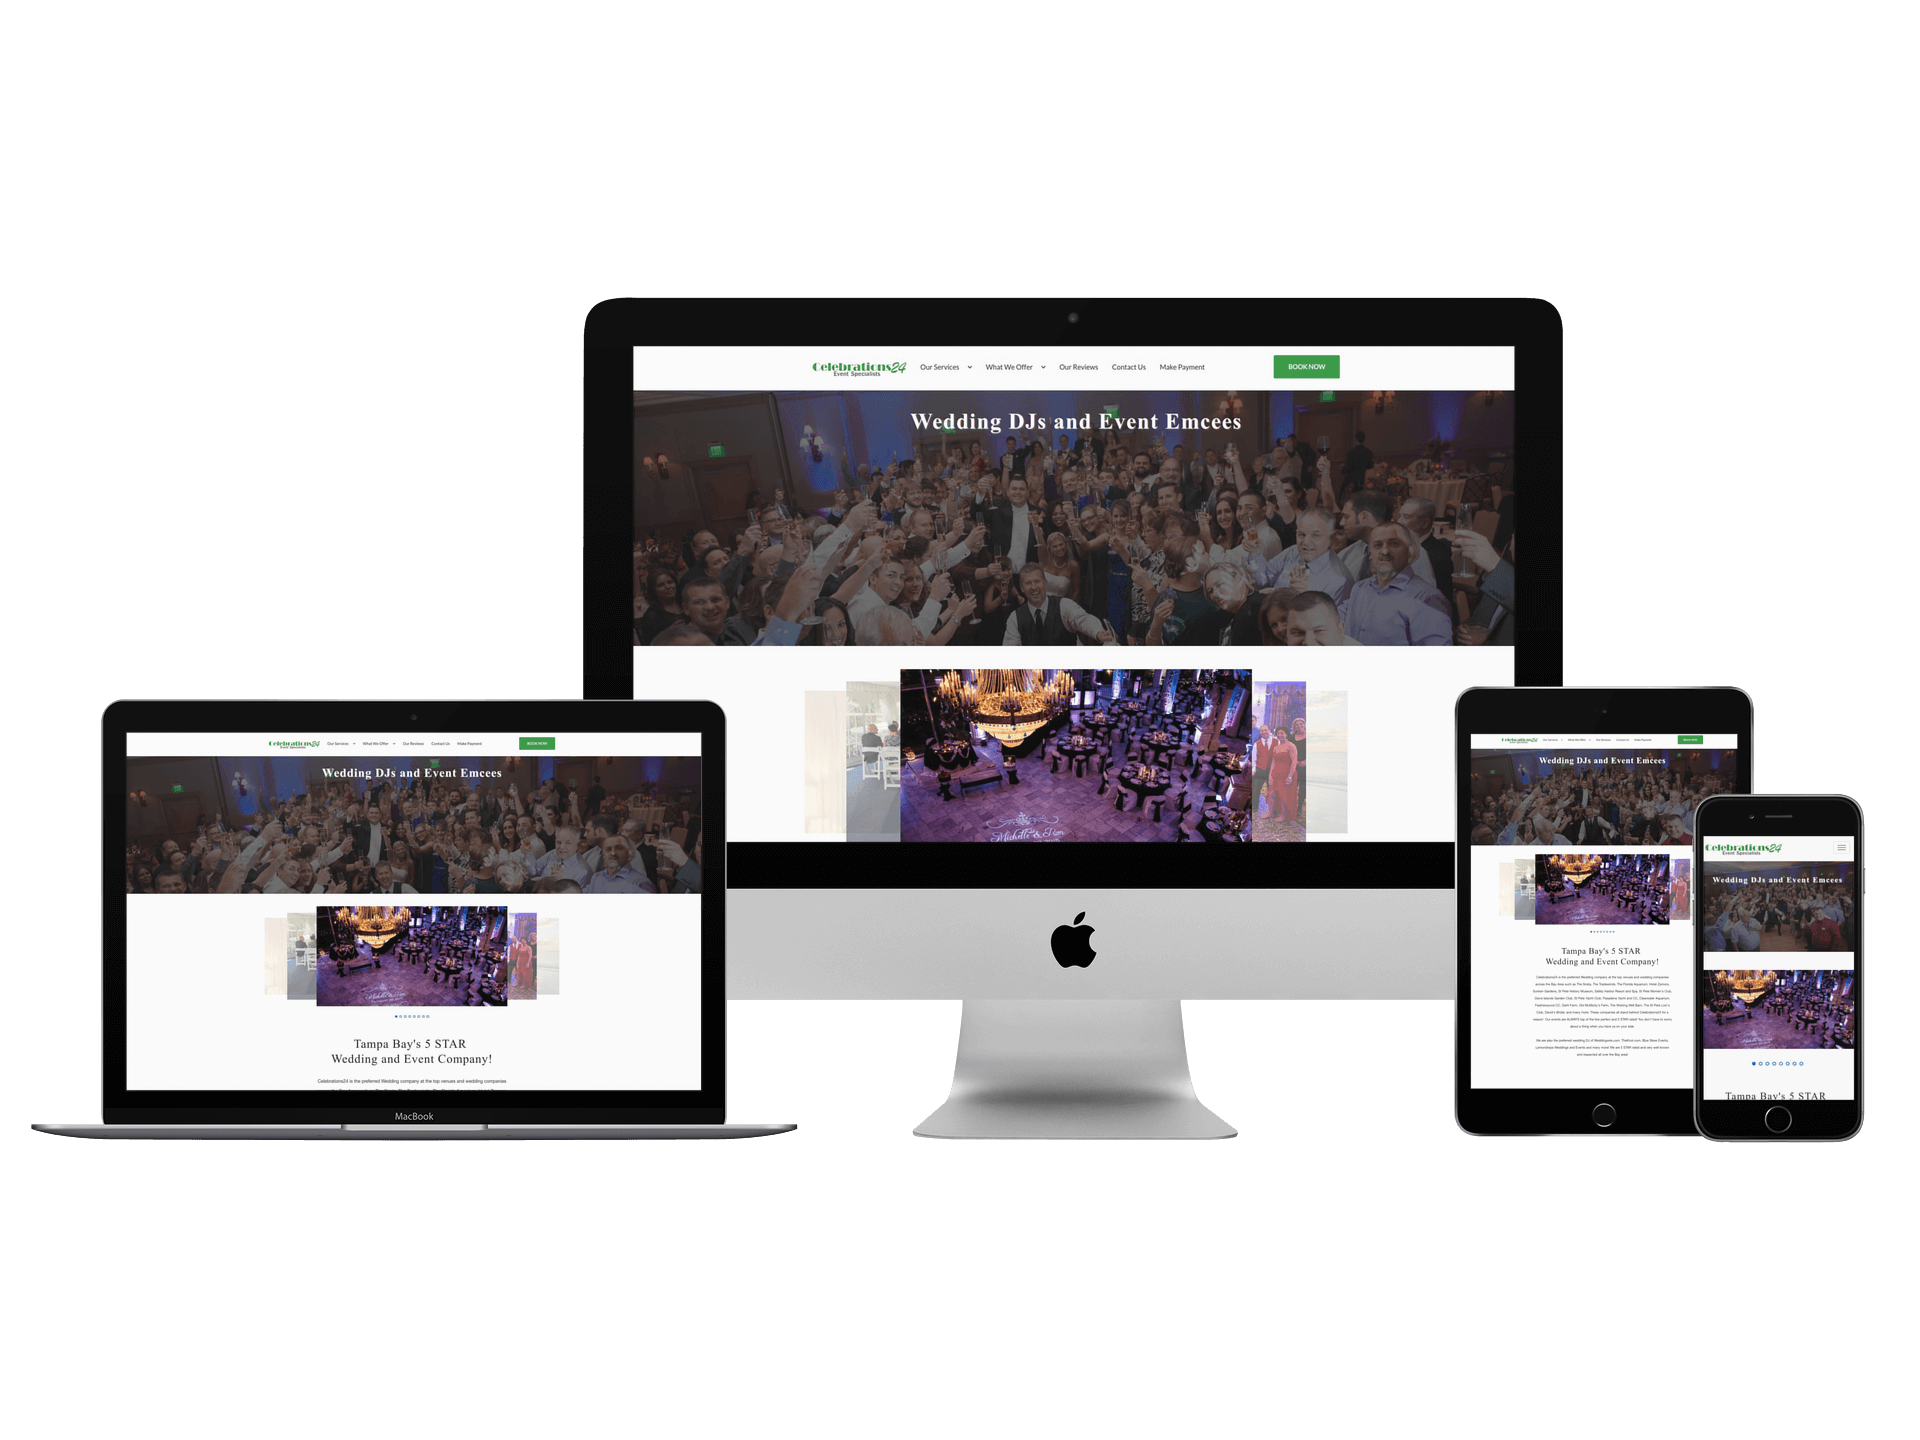 Web redesign for Celebrations24 based in Tampa FL